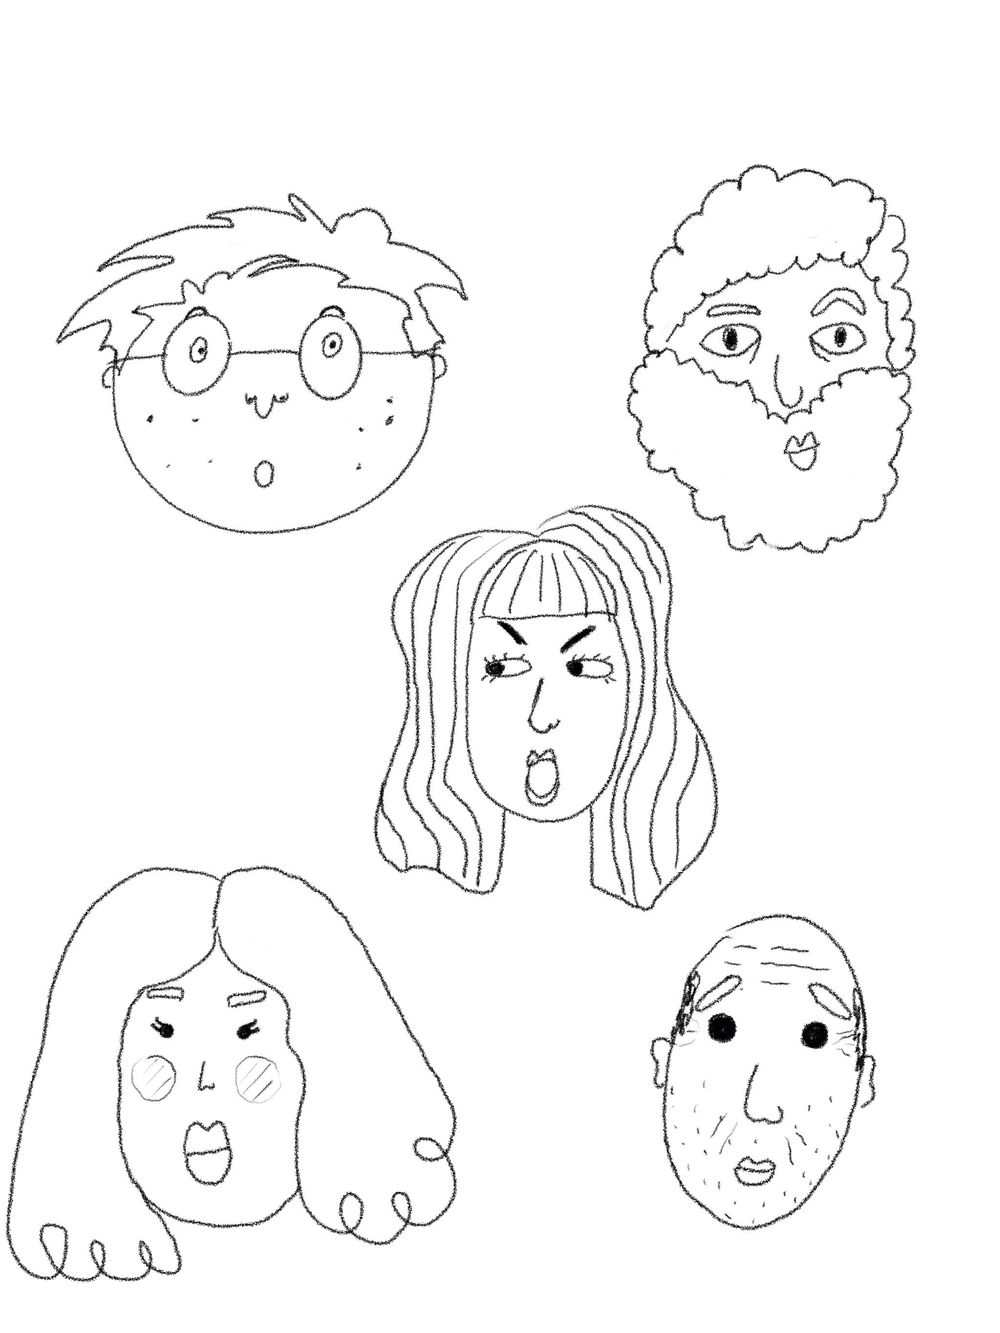 FUN WITH FACES - image 4 - student project